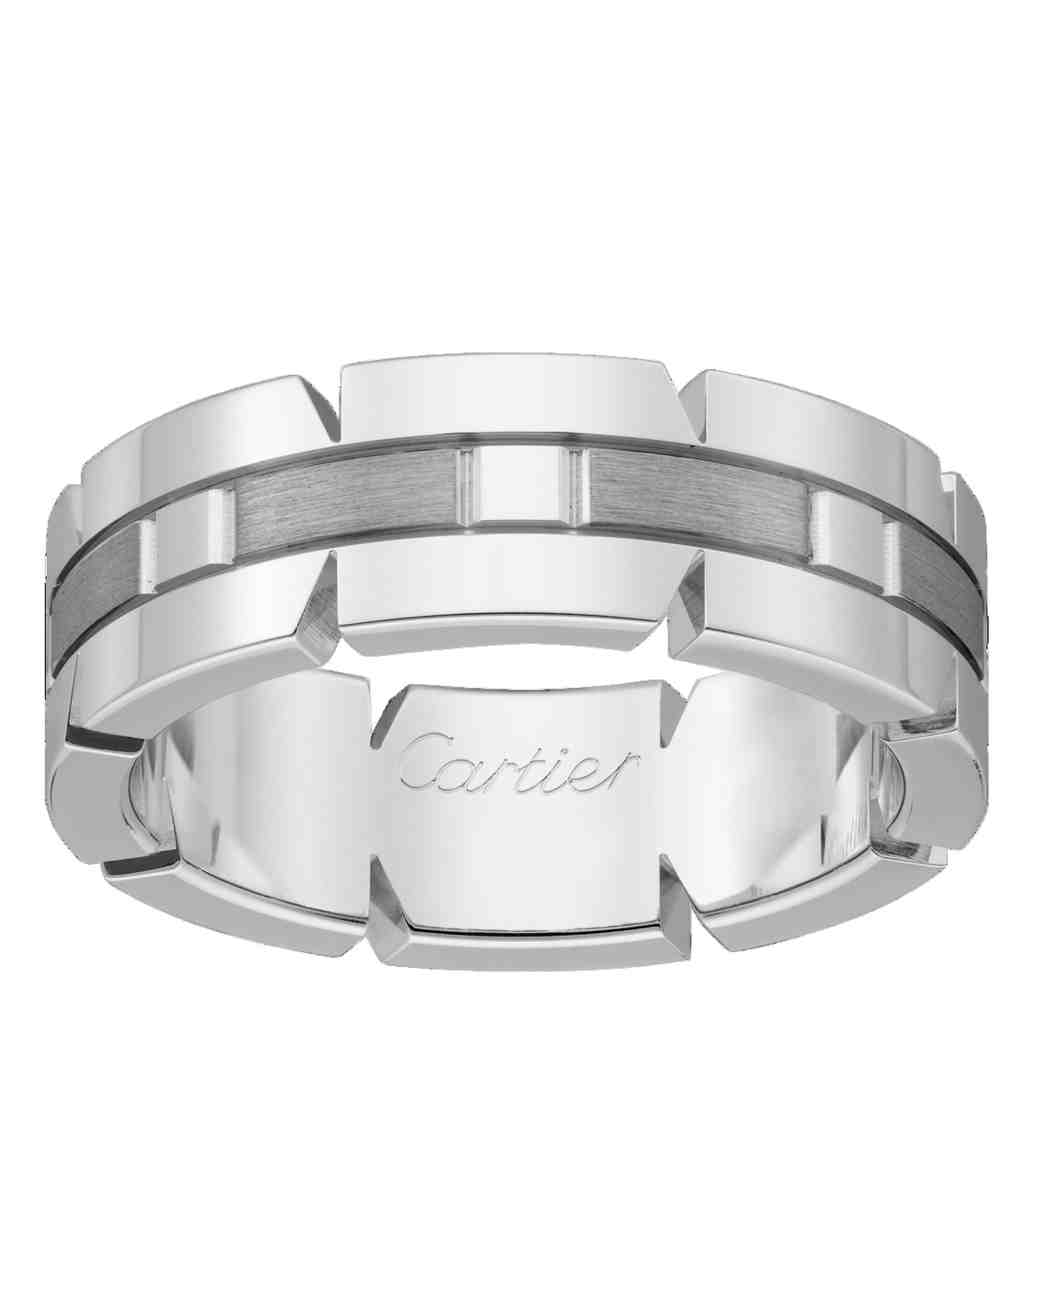 Awesome Mens Cartier Wedding Bands Ideas Best Hairstyles and